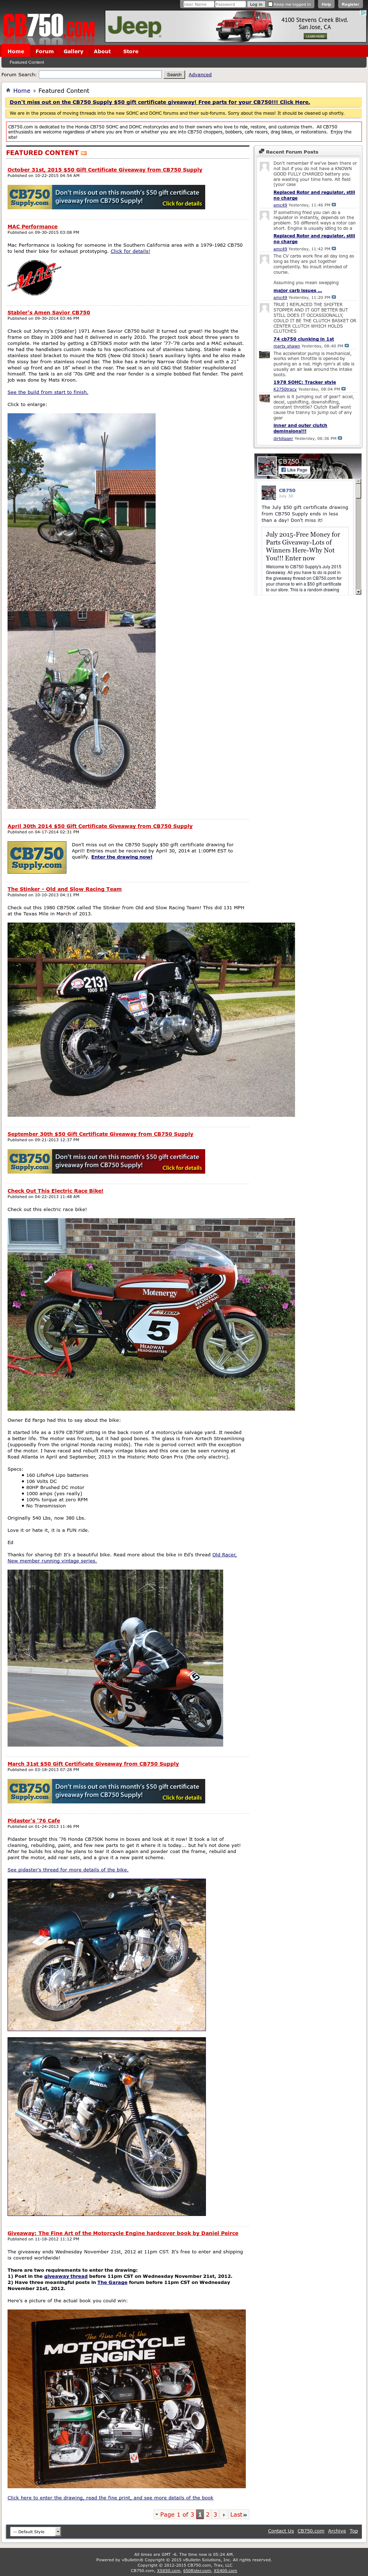 Cb750 Competitors, Revenue and Employees - Owler Company Profile